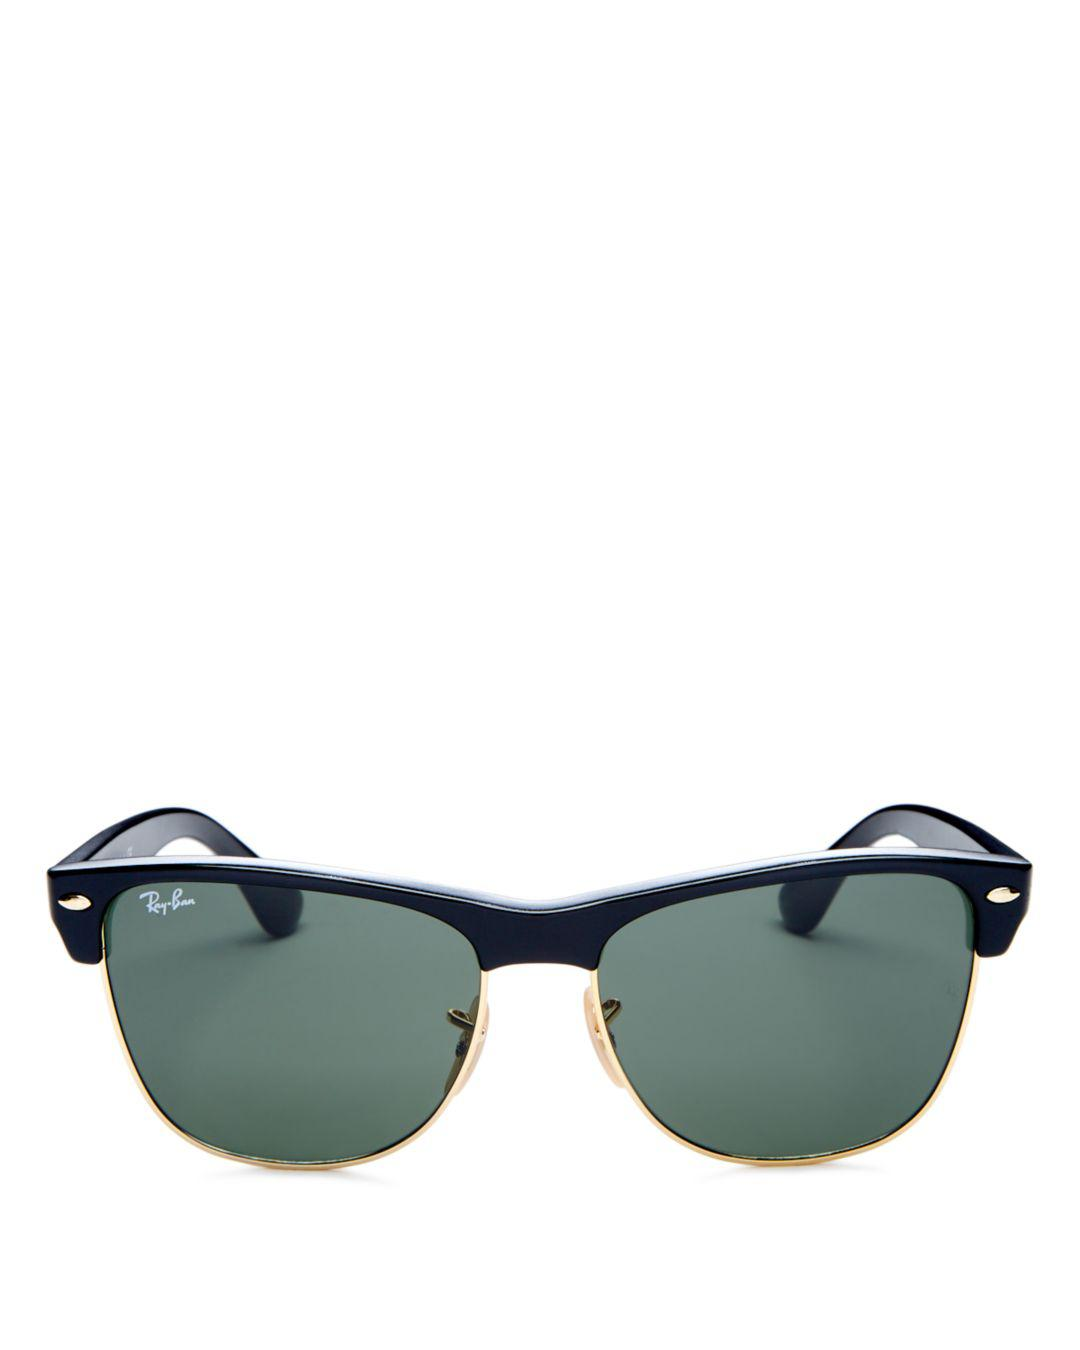 c7eae5f3c4 Lyst - Ray-Ban 57mm in Black for Men